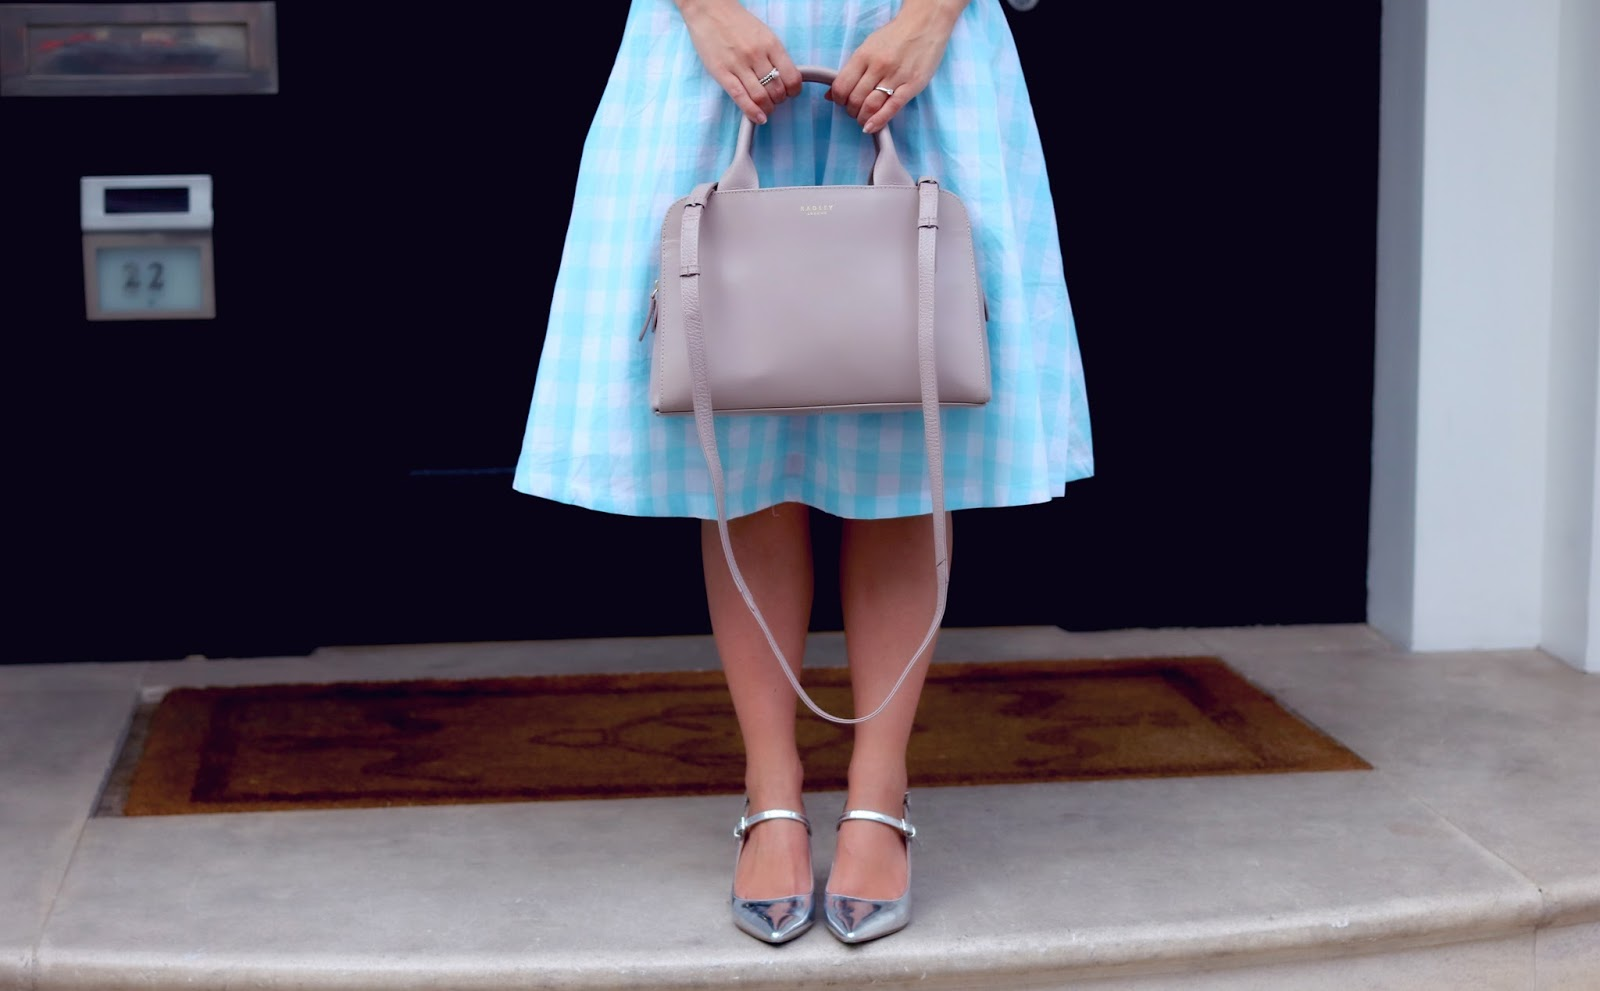 Blue Gingham Lindy Bop Dress and Millbank Radley Bag